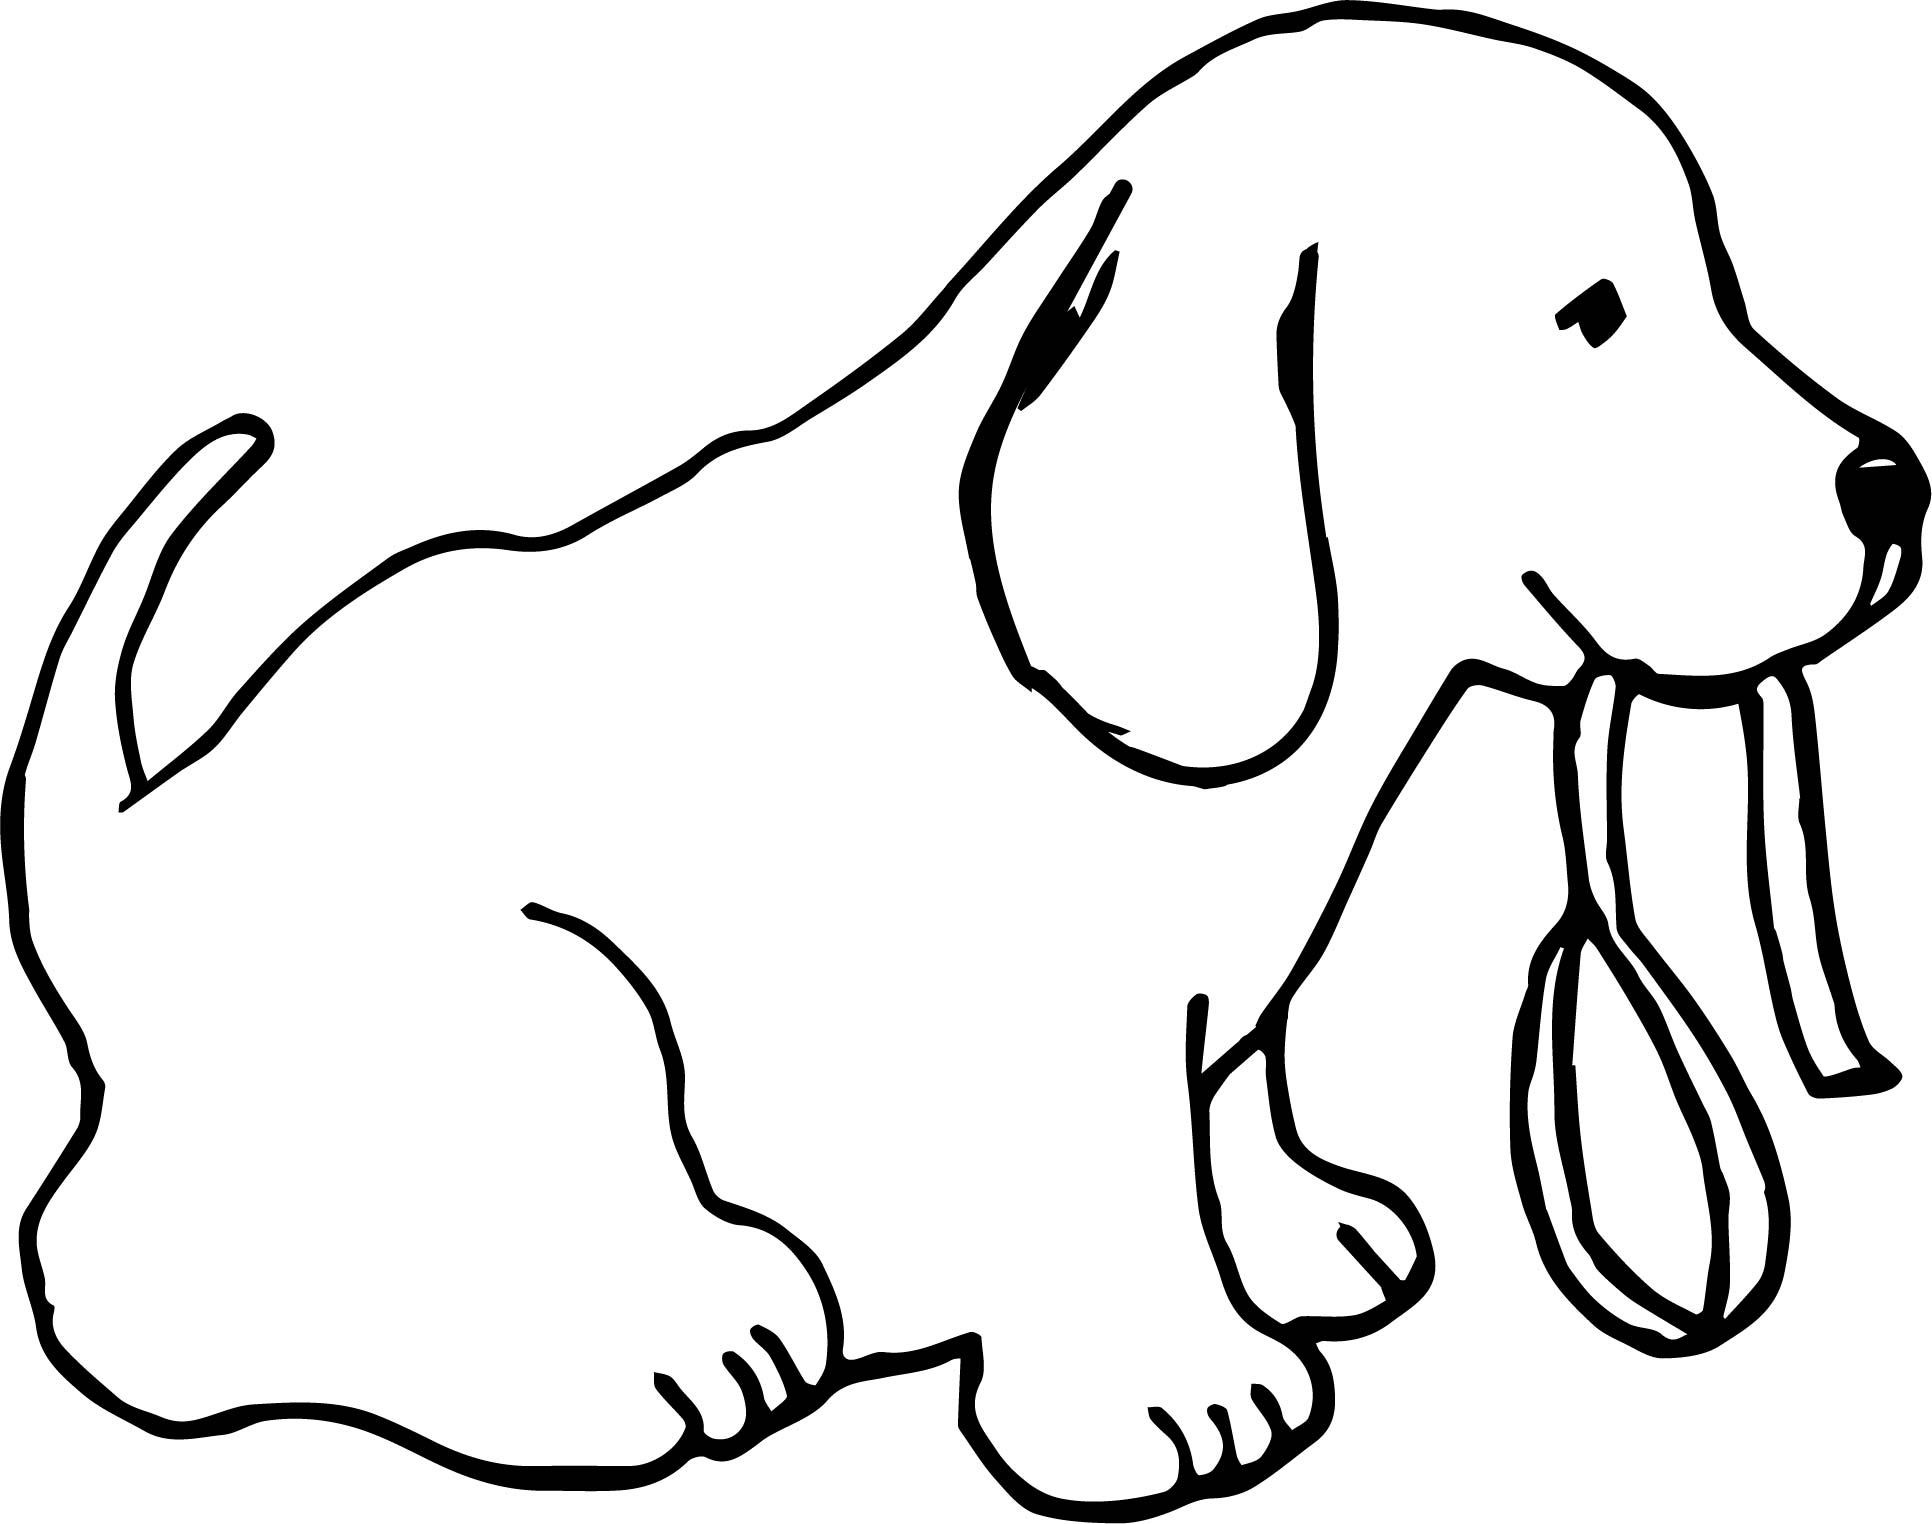 Dog Leash Colouring Pages Page 2 Sketch Coloring Page